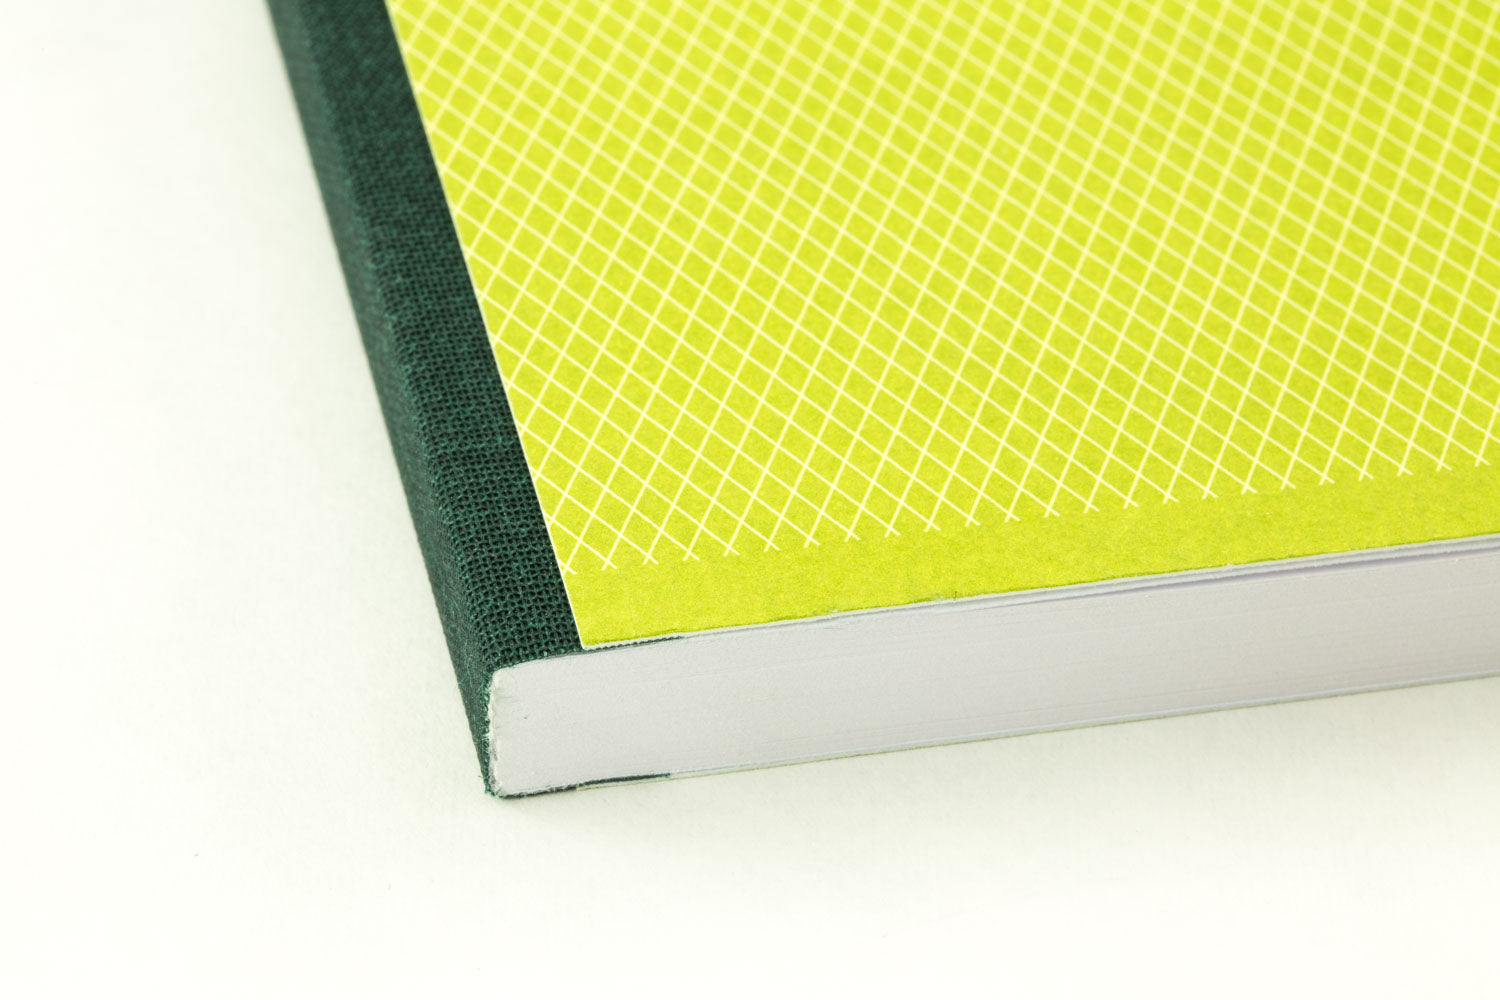 Clairefontaine 1951 Clothbound A5 Notebook - Green, Lined